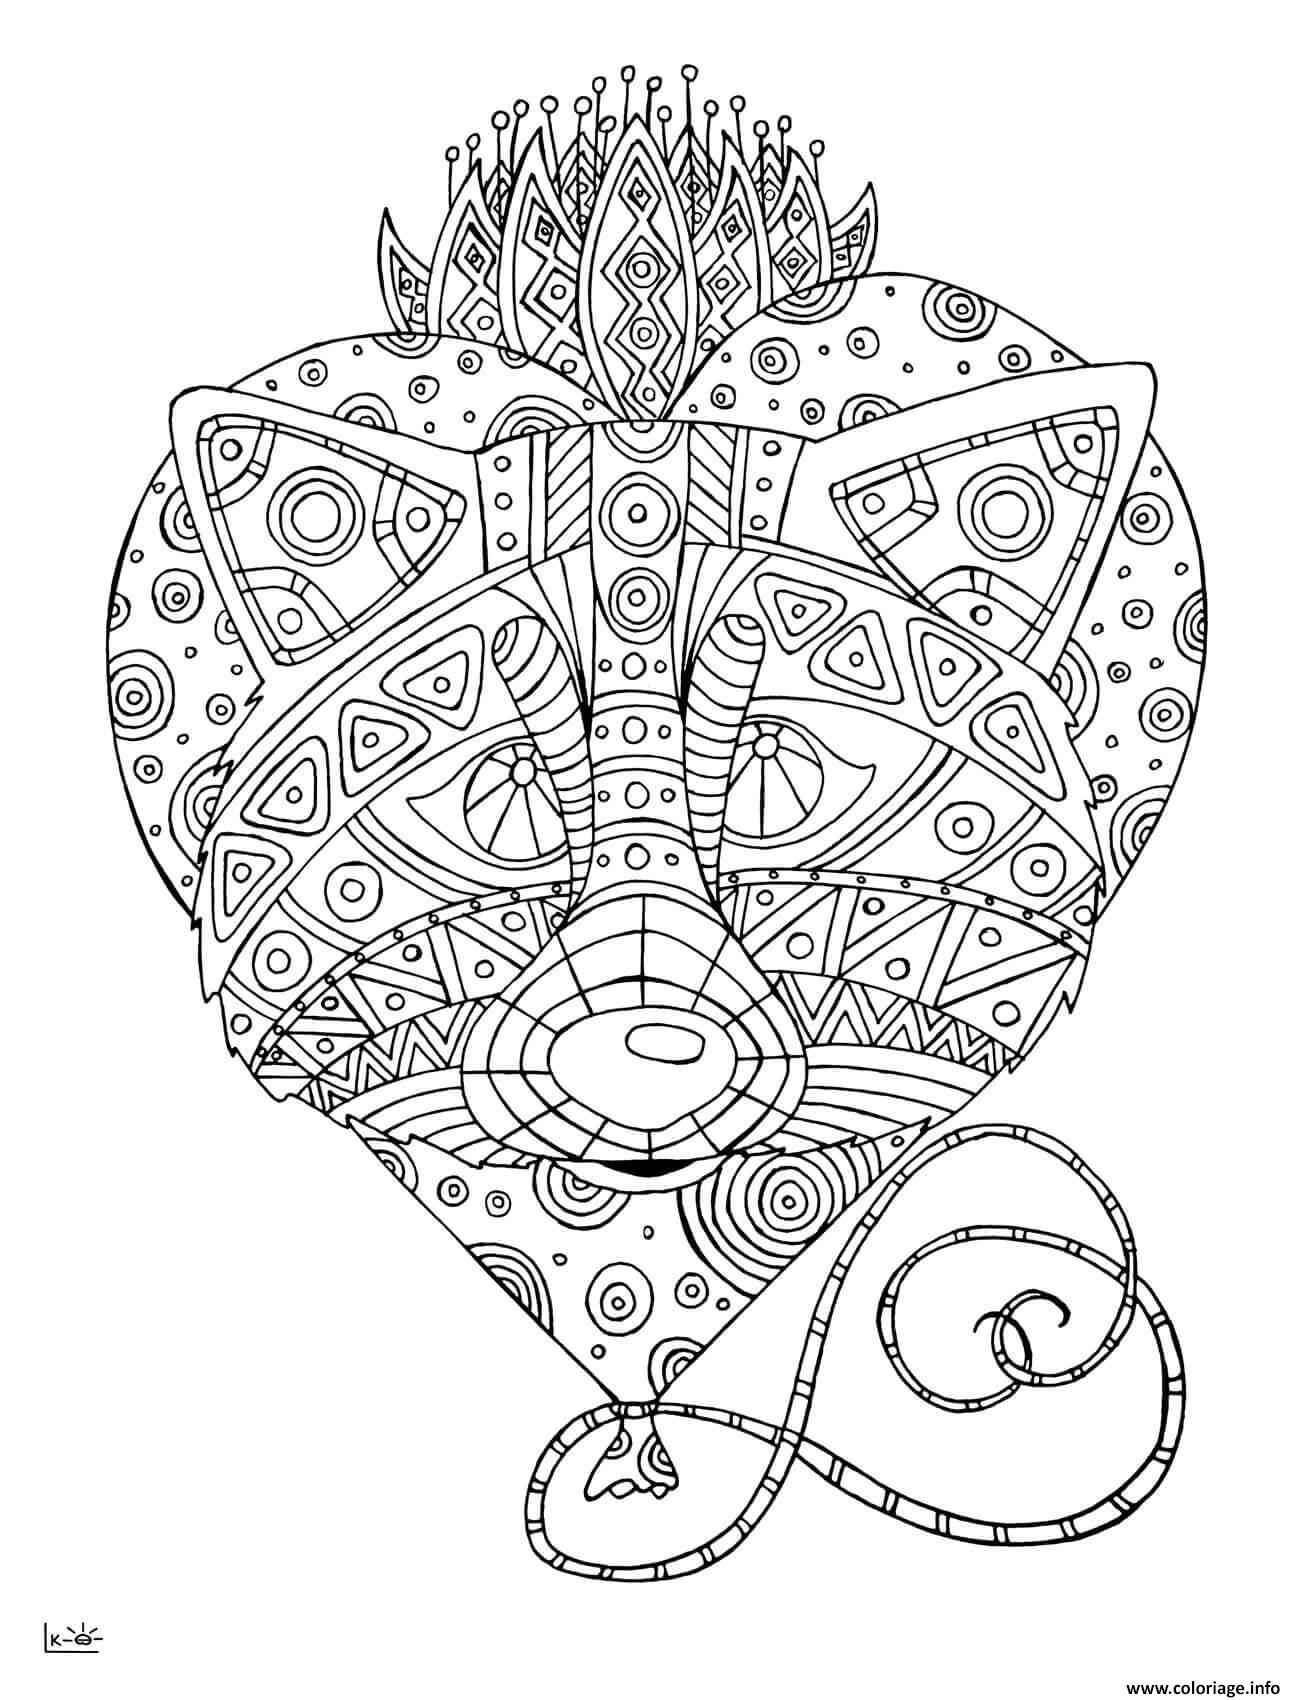 Dessin raccoon with tribal pattern adulte Coloriage Gratuit à Imprimer